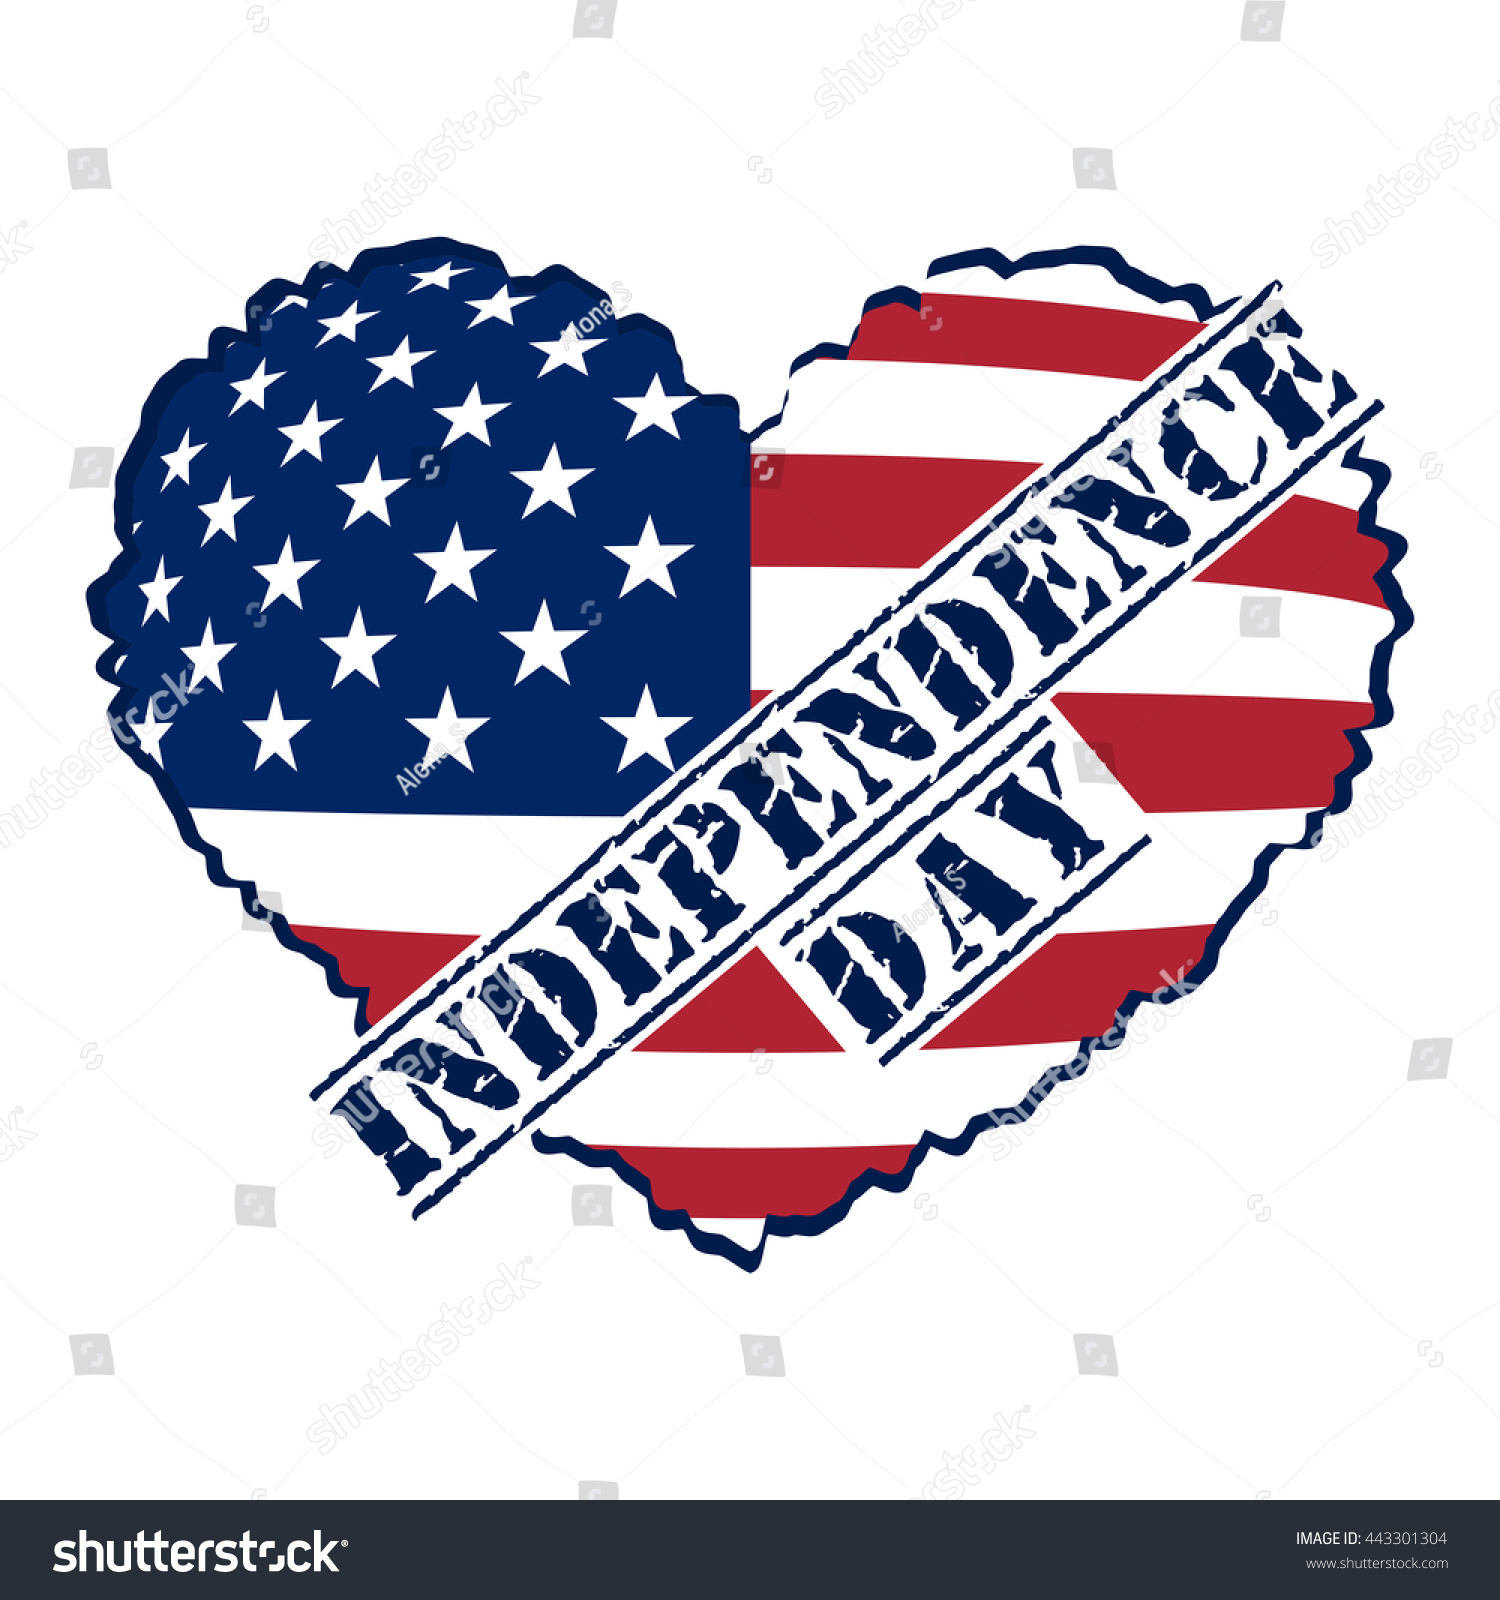 American flag heart shaped symbol 4th stock vector 443301304 american flag as heart shaped symbol for 4th of july independence day celebration patriotic biocorpaavc